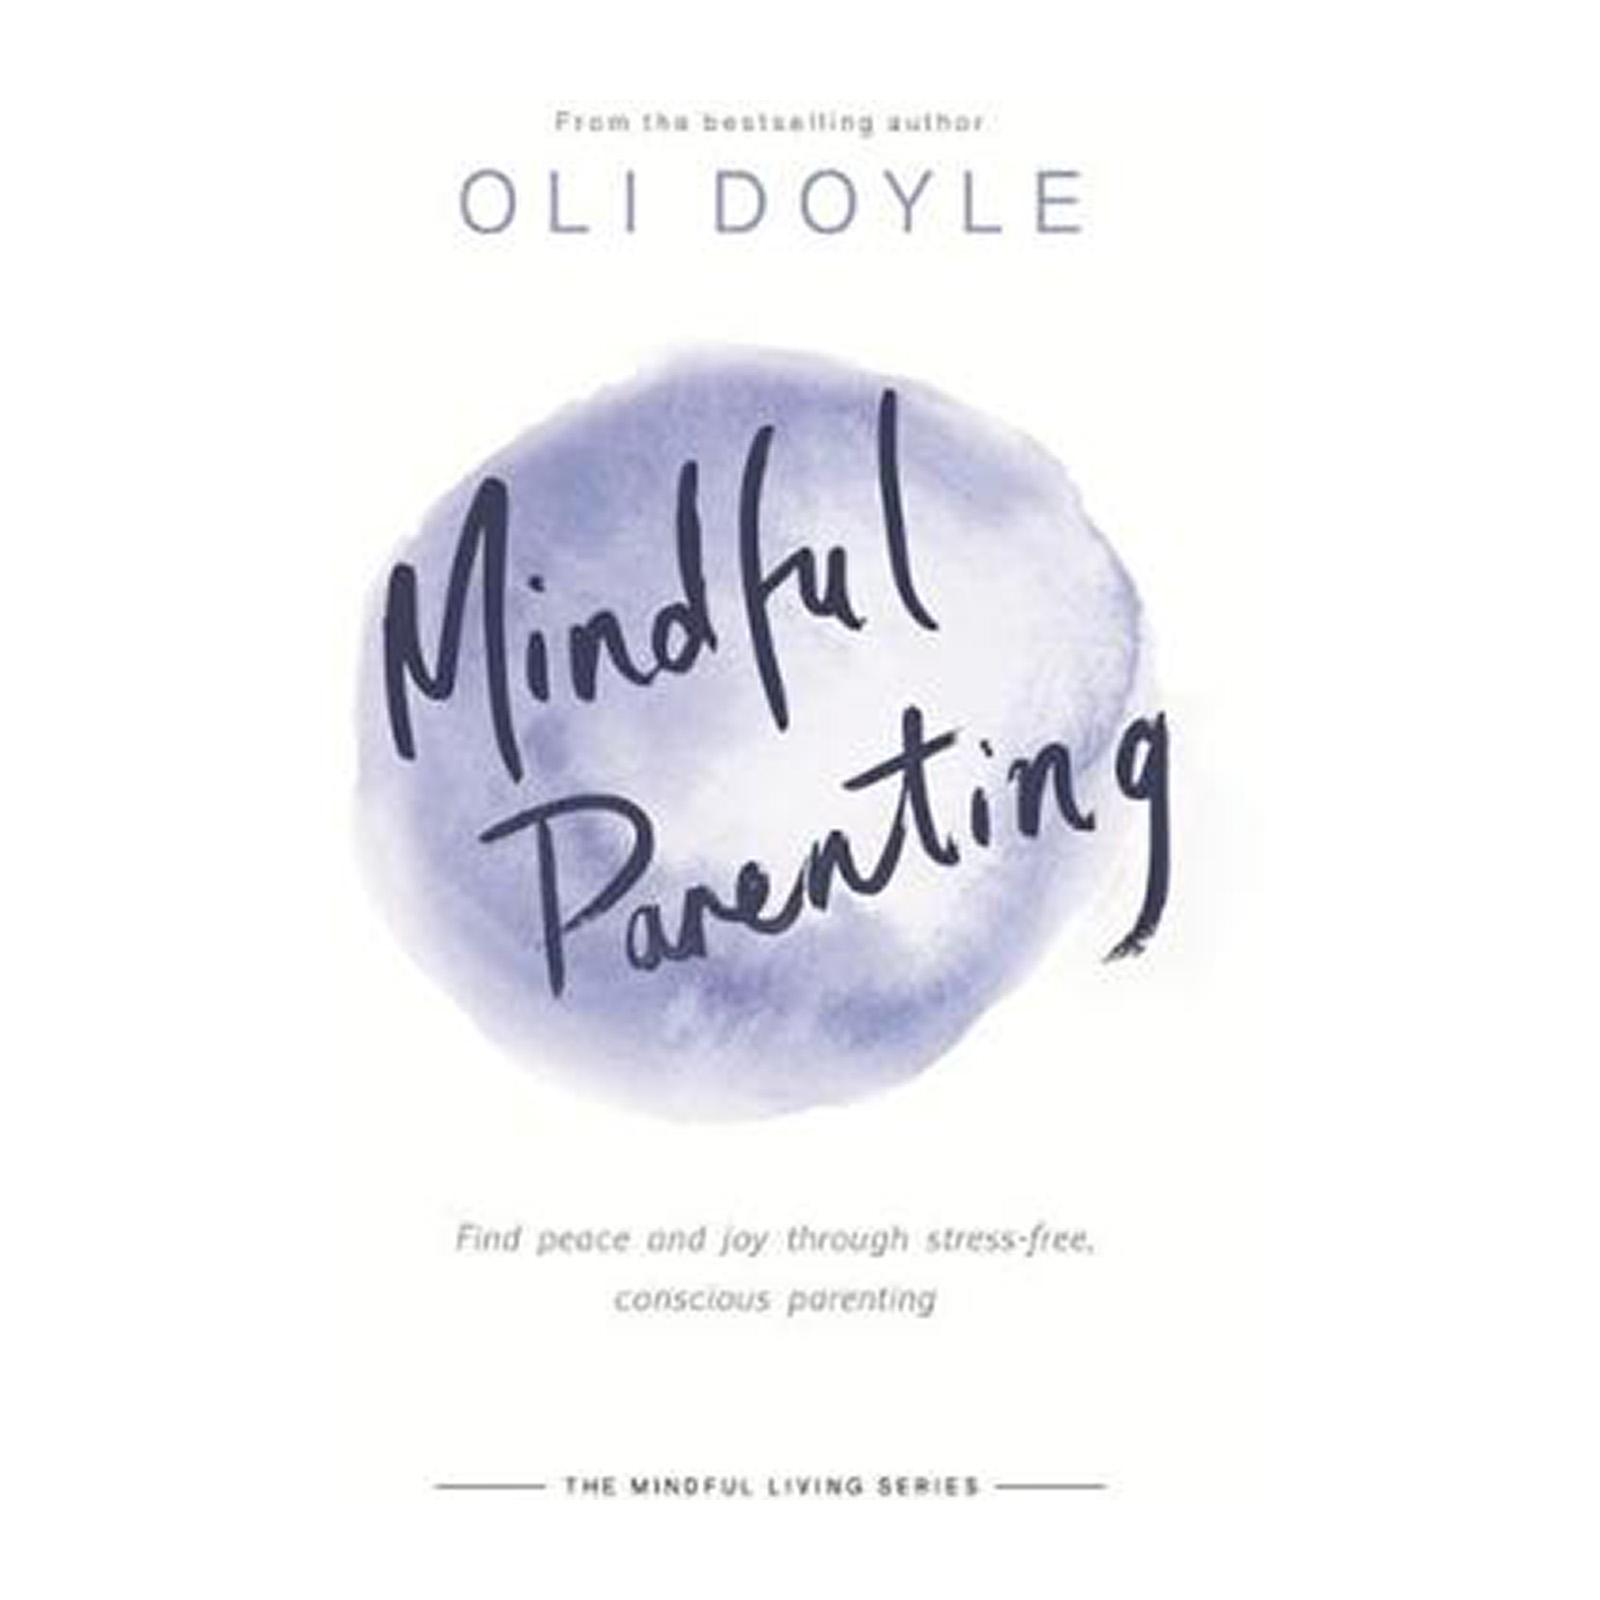 Mindful Parenting: Find Peace And Joy Through Stress-Free Conscious Parenting (Paperback)